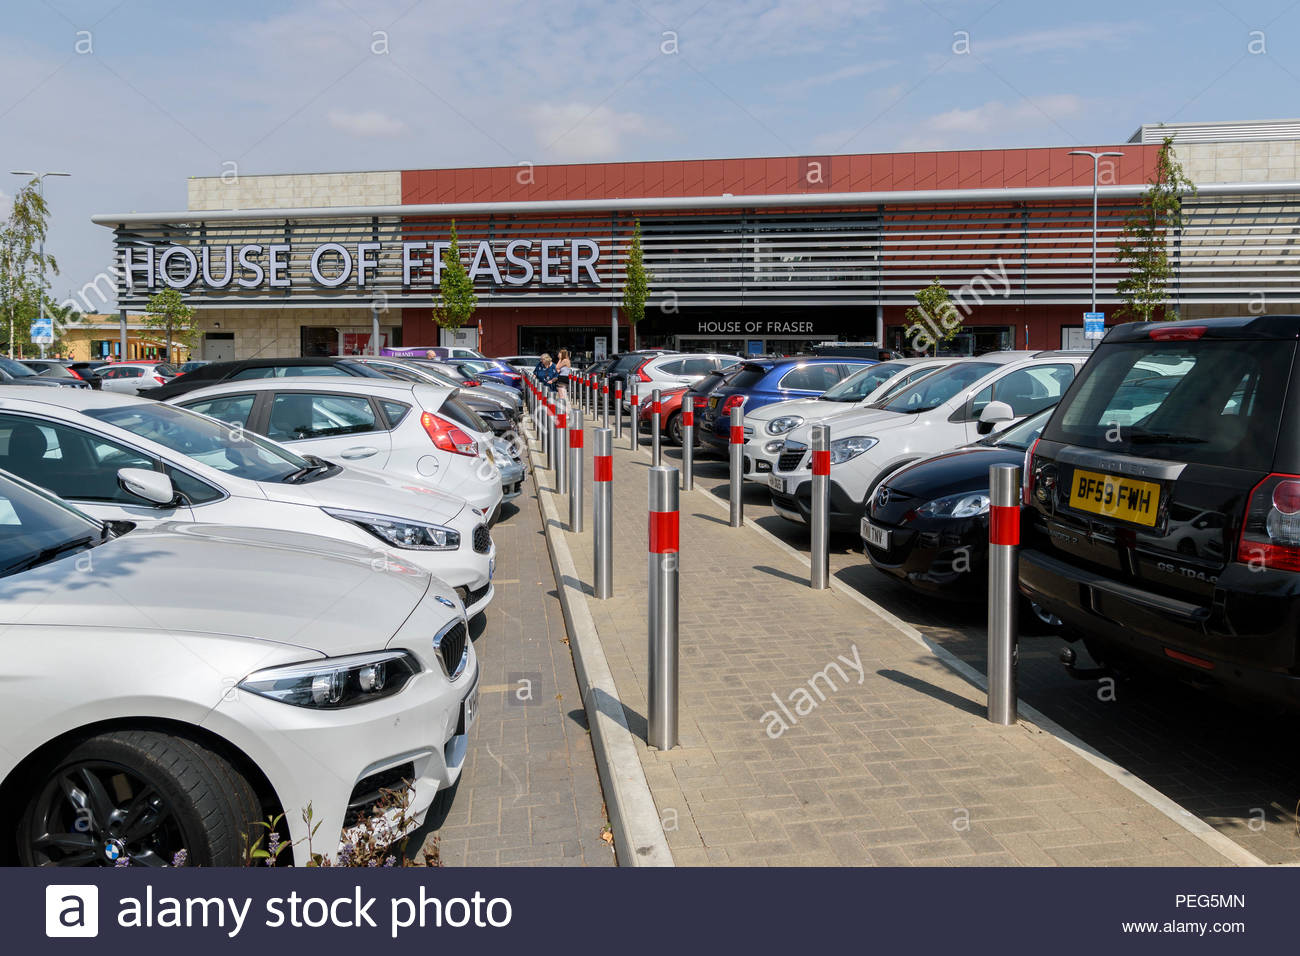 Walkway between parked cars leading to House Of Fraser store in Rushden Lakes, Northamptonshire, England, UK - Stock Image